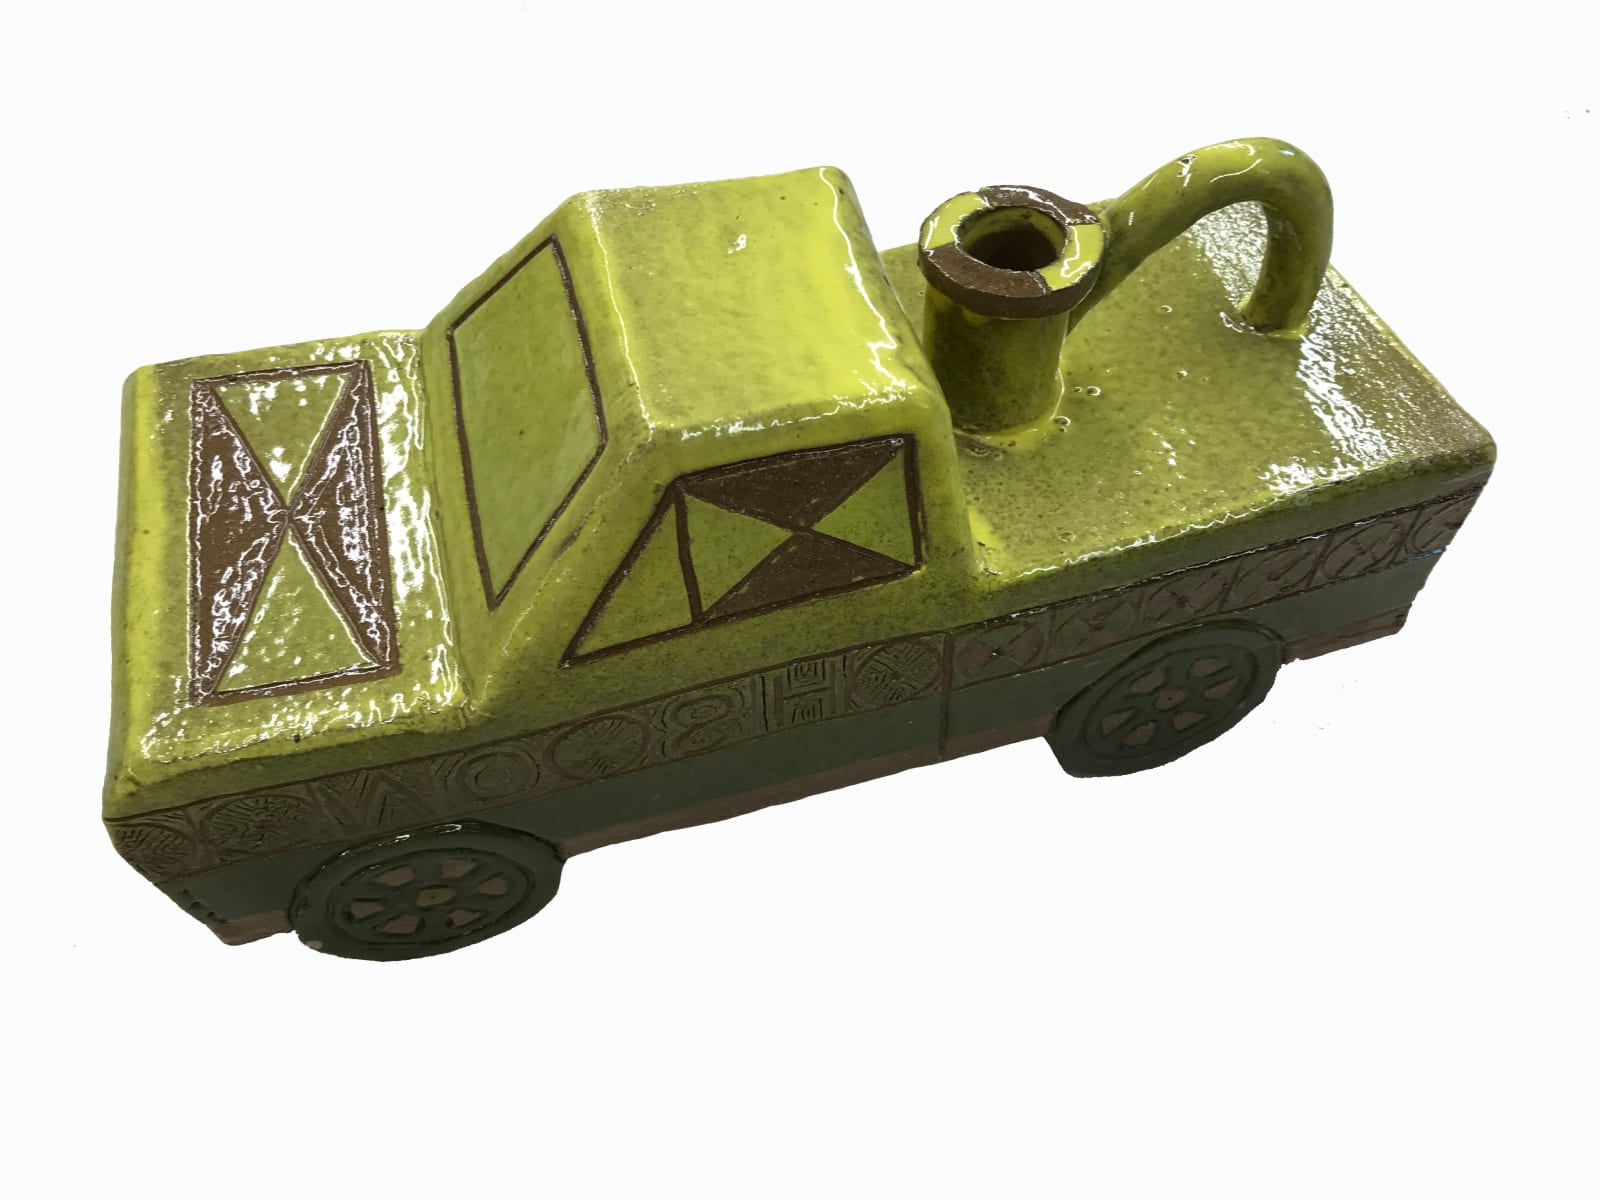 Edward Salas Truck Vessel (H8 On This), 2021 Stoneware clay and glaze 12 x 4.5 x 6.5 in 30.5 x 11.4 x 16.5 cm